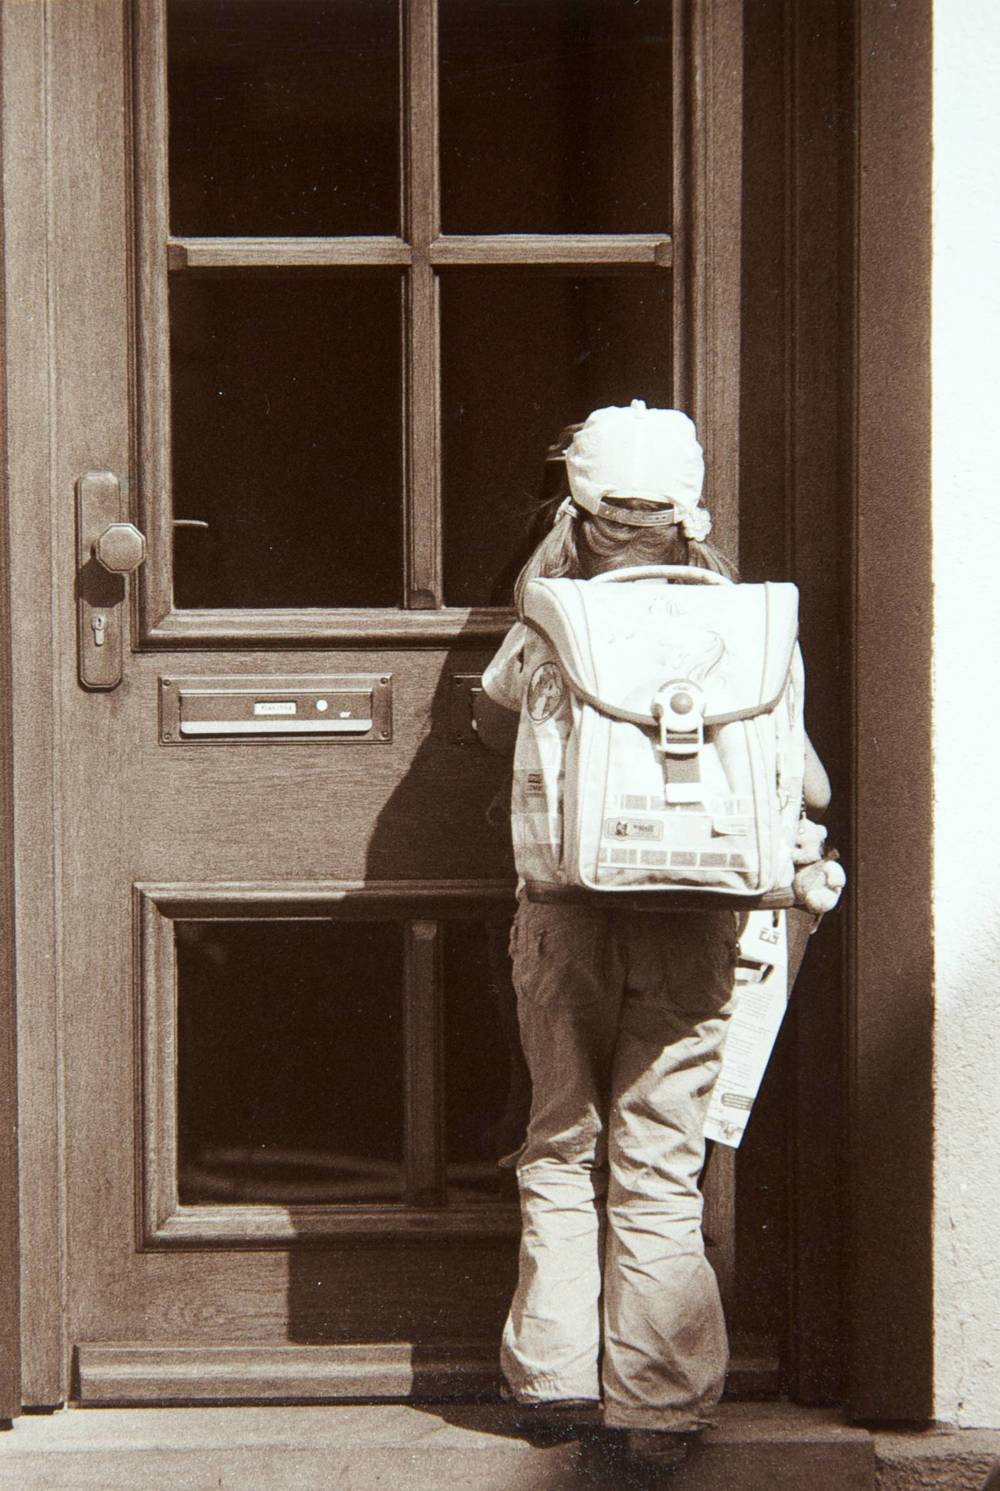 Schoolgirl at Door (Schiltach, Germany)